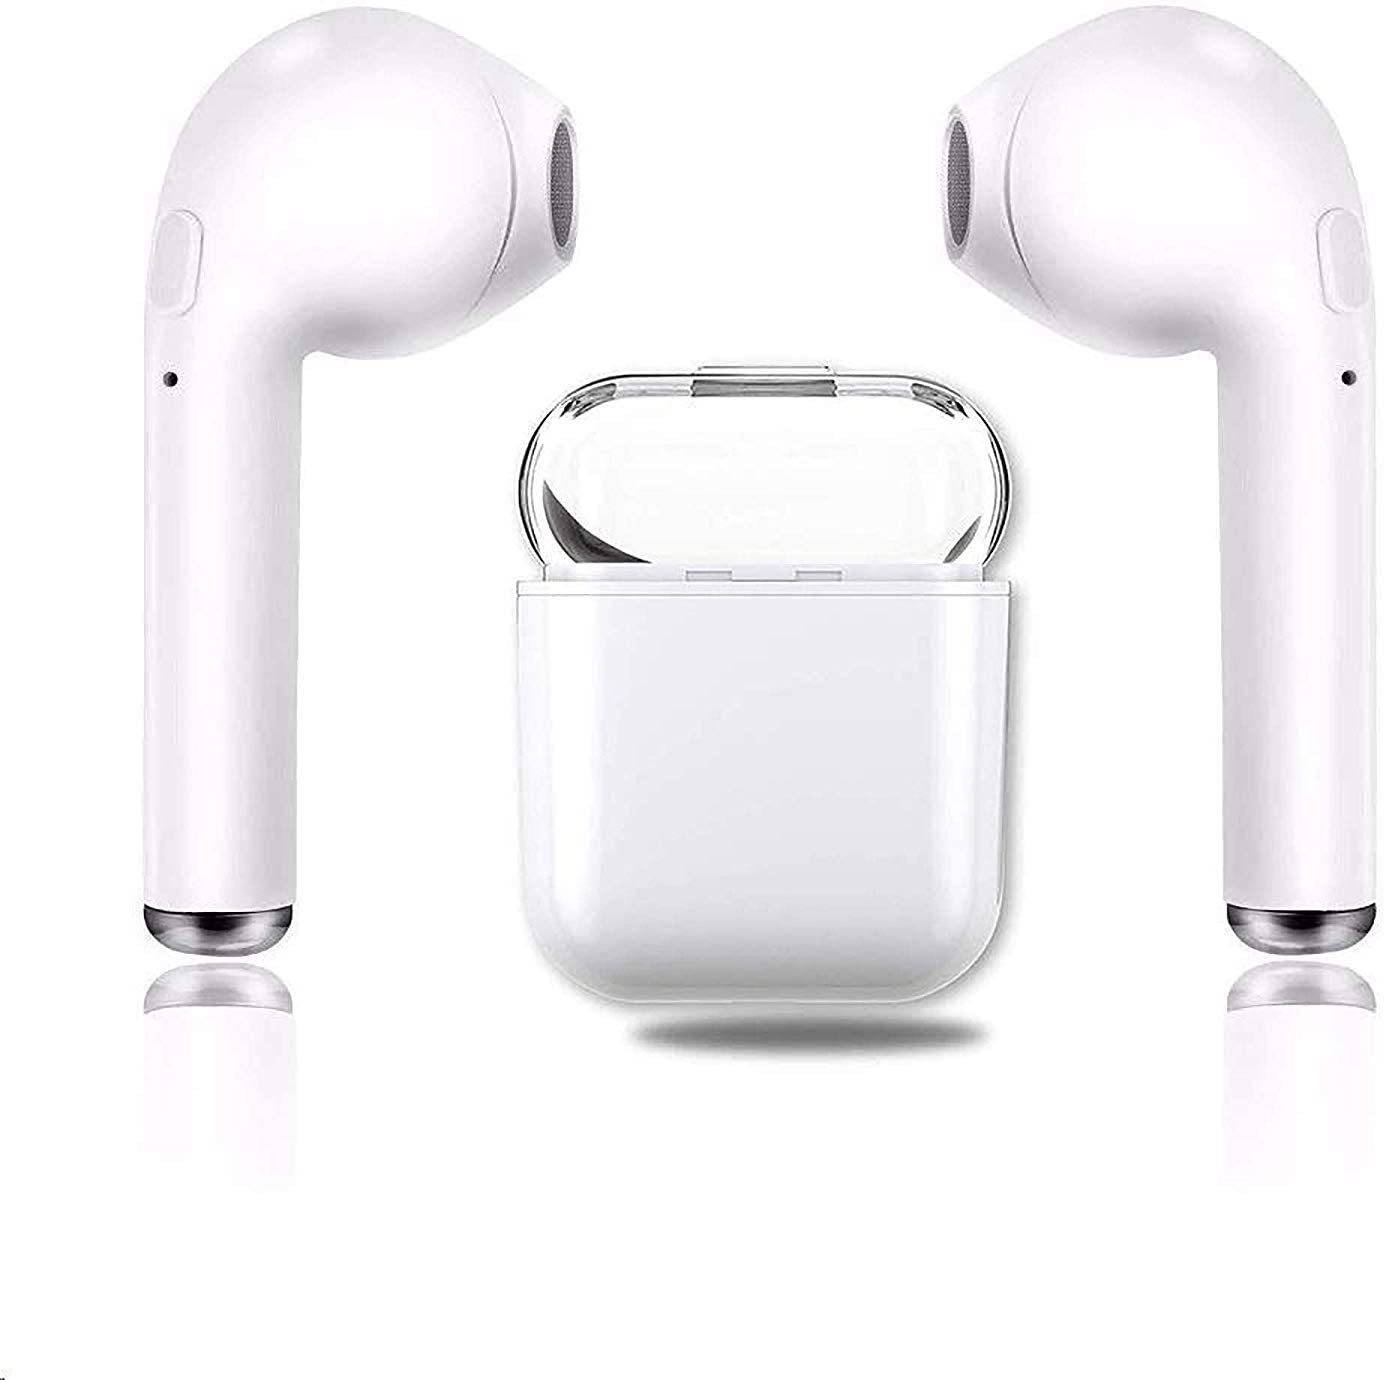 UDADA-1 Bluetooth Headphones 5.0, Wireless Earbuds with Graphene-Enhanced Driver s, 3D Stereo Surround Sound, IPX5 binaural Call, Sports Headphones for iPhone Airpod Airpods Android Apple